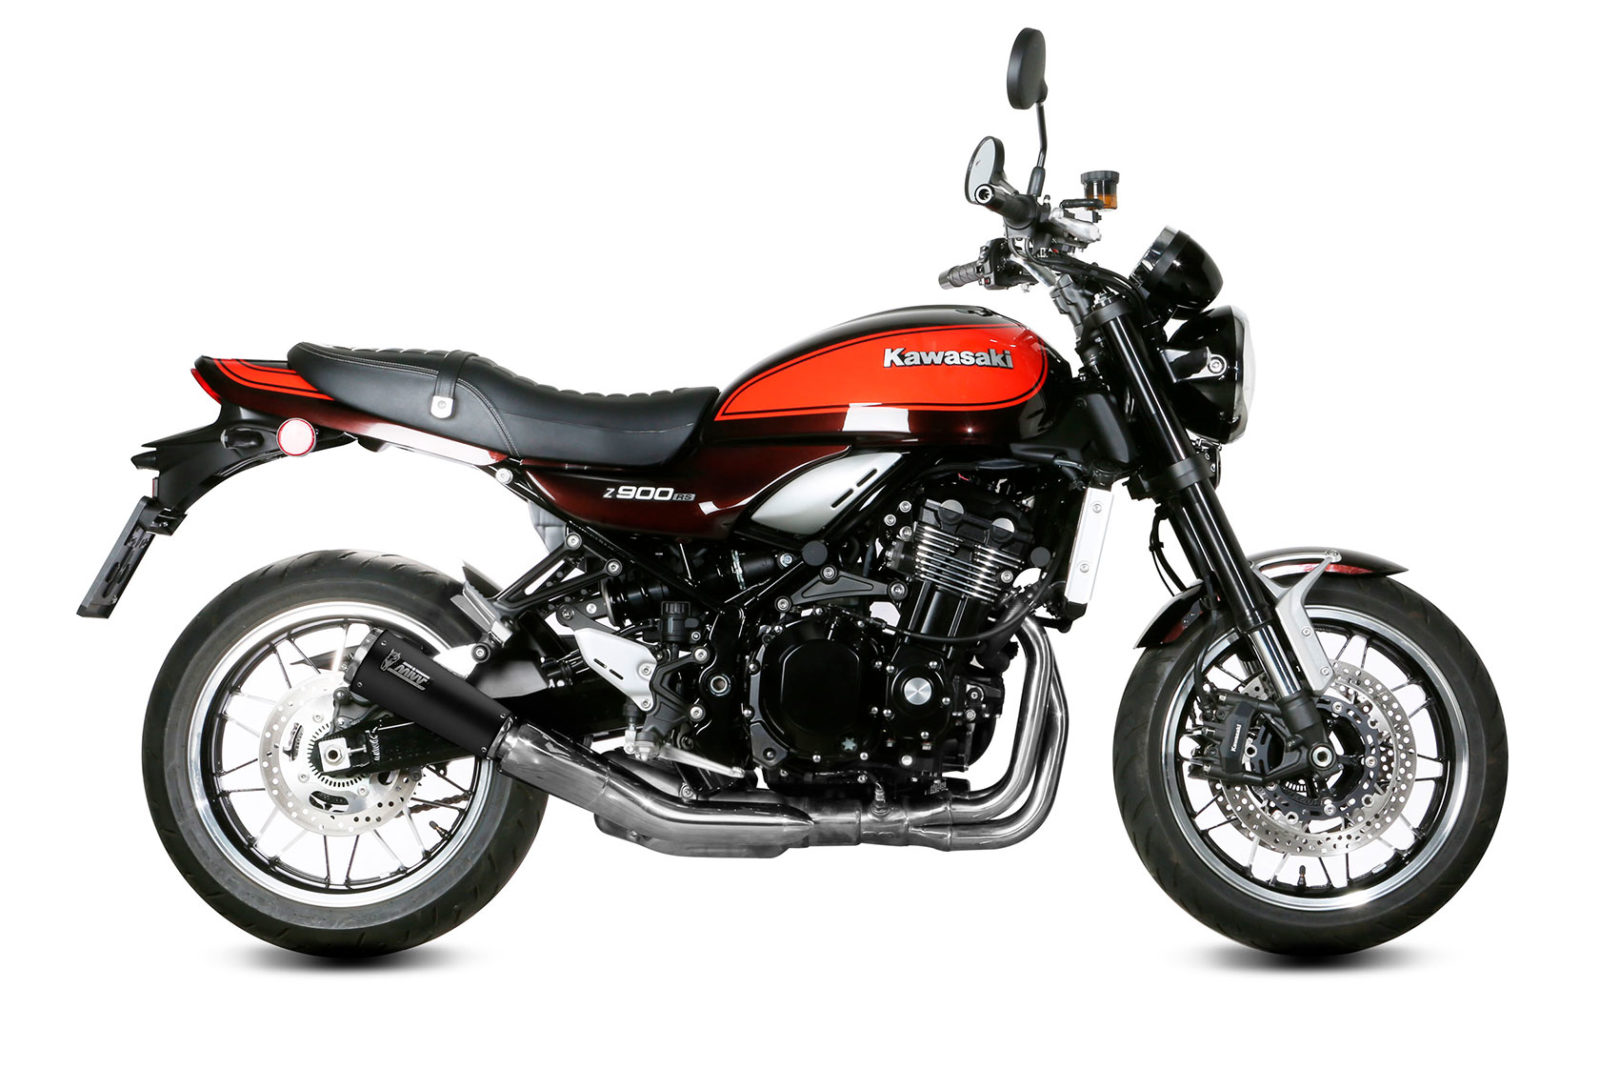 mivv exhausts for kawasaki z 900 rs mivv. Black Bedroom Furniture Sets. Home Design Ideas